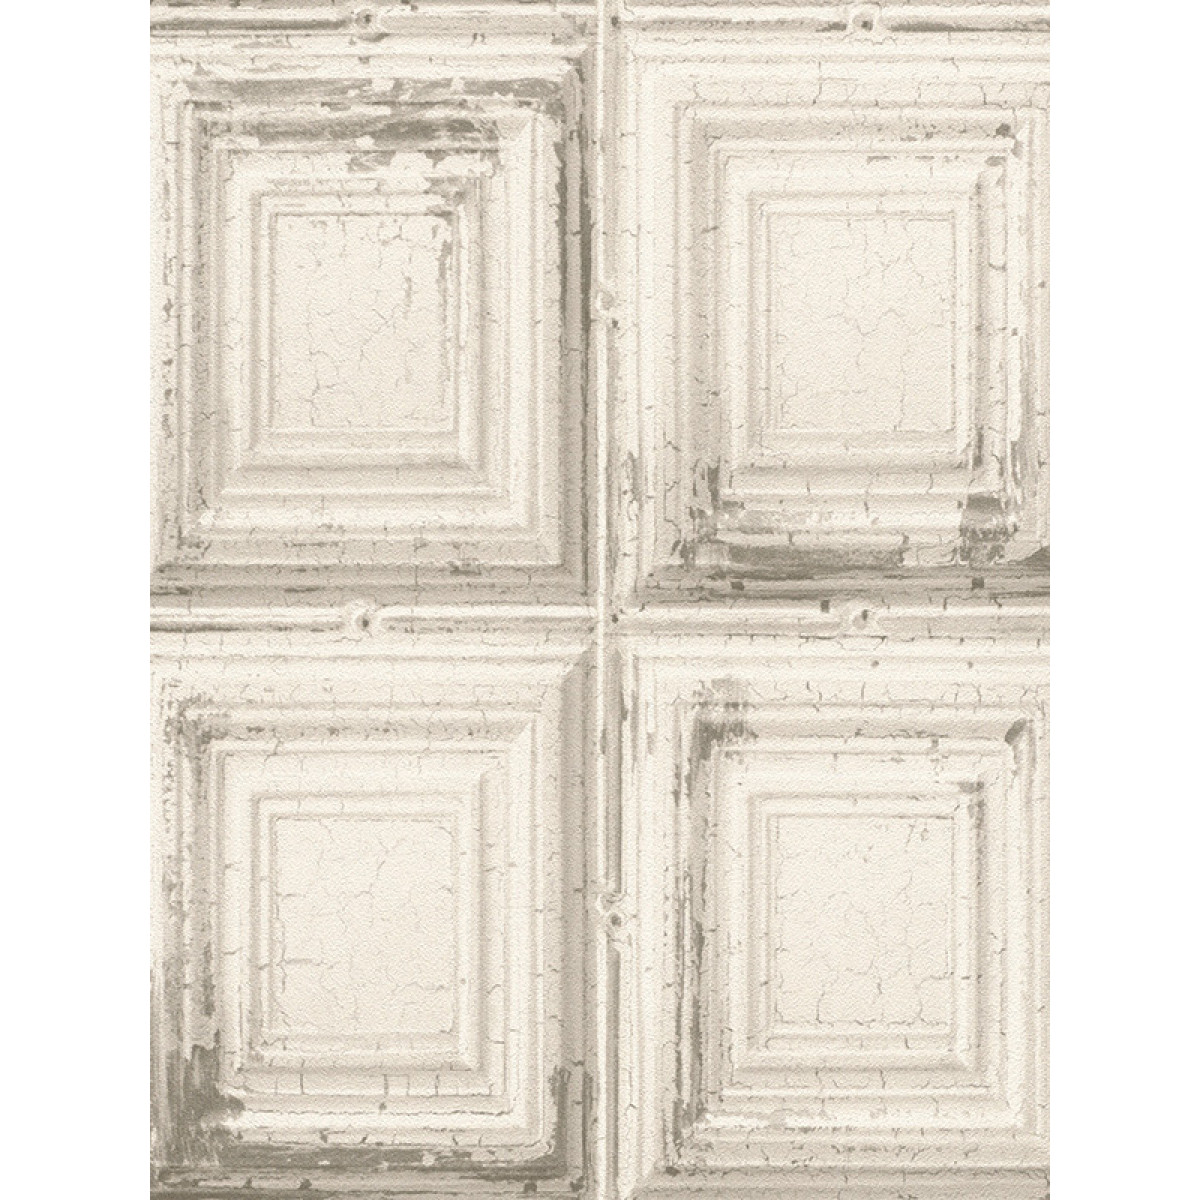 Rasch distressed wood panels wallpaper white 932614 for Wooden wallpaper price